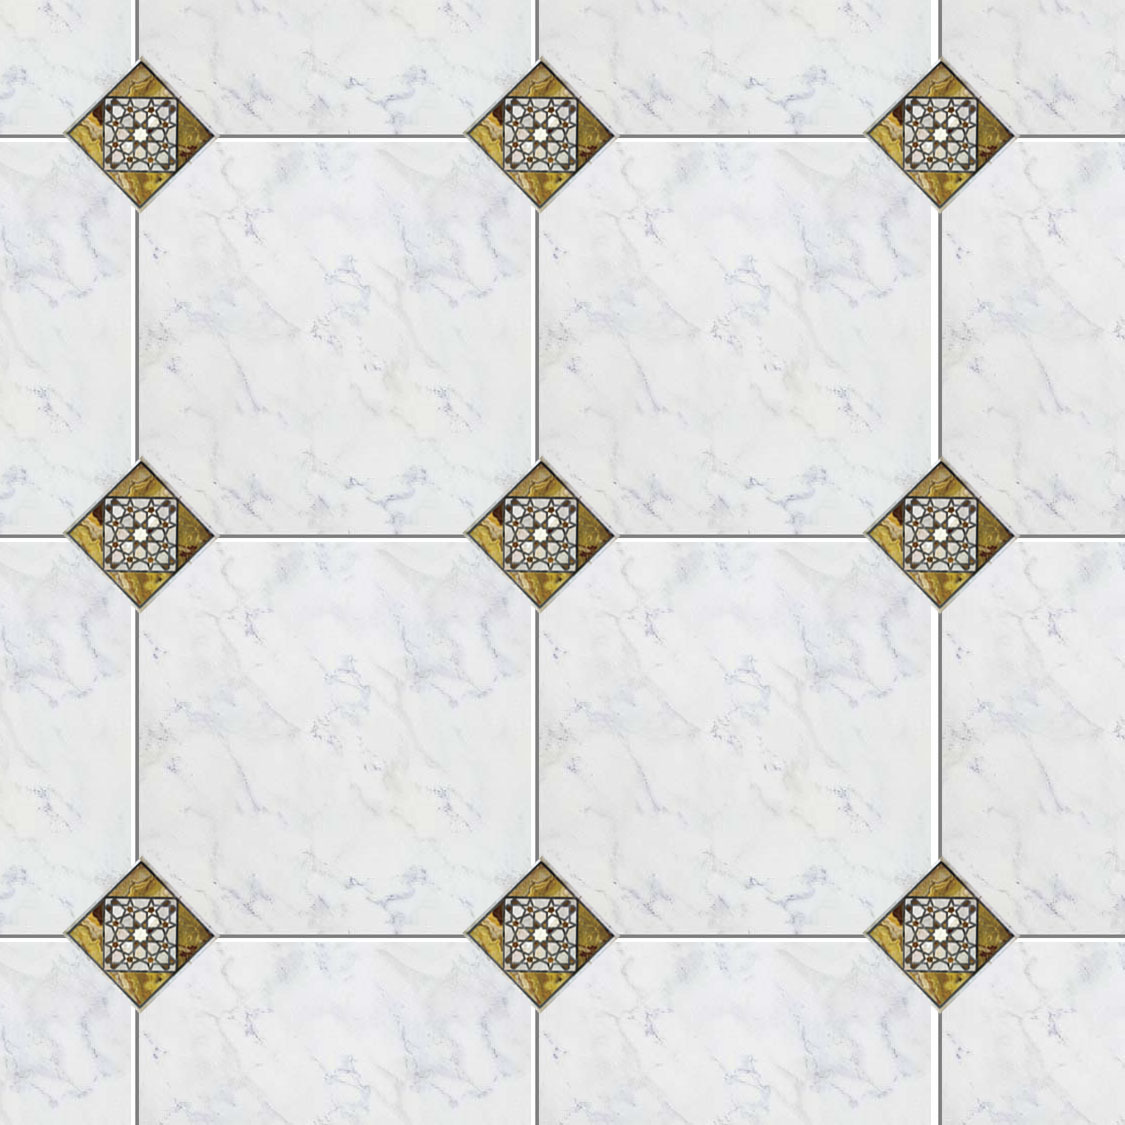 100pc set Retro Waterproof Floor Stickers Toilet Bathroom Tiles Stickers Home Decoration Tile Decal Cross Gap Wall Mural Sticker in Wall Stickers from Home Garden